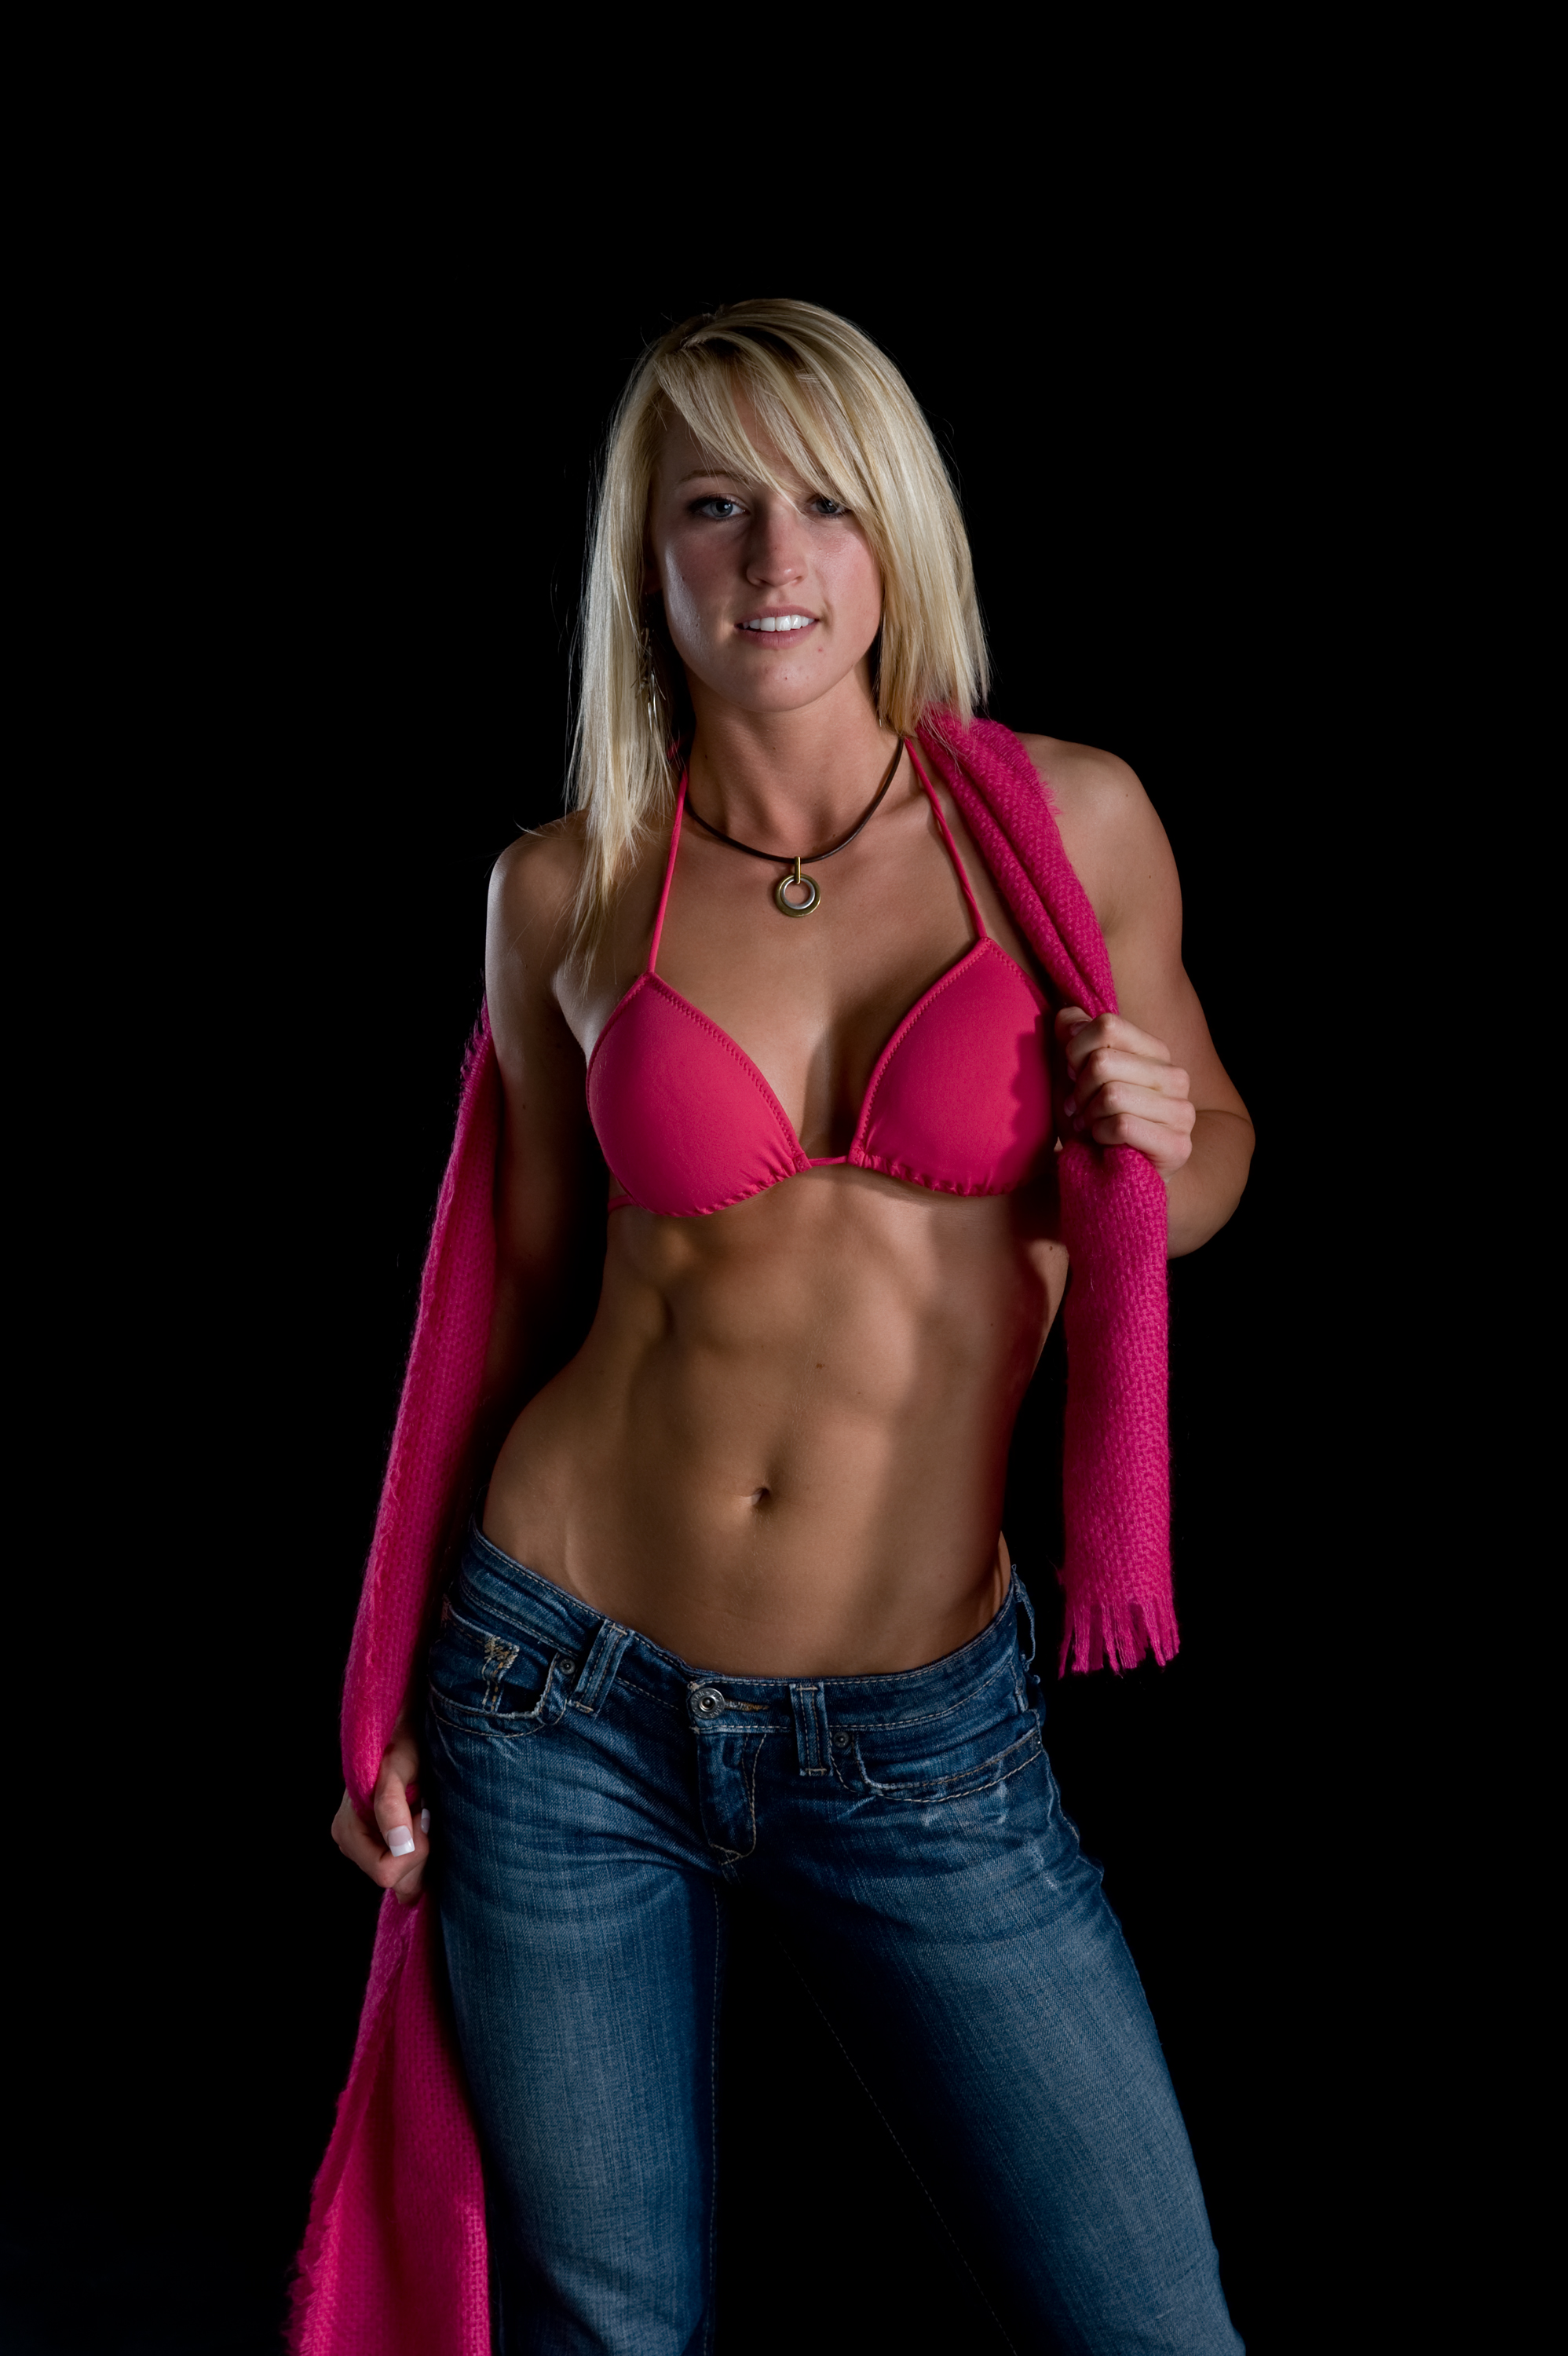 sports-chicks-with-abs-naked-brook-nude